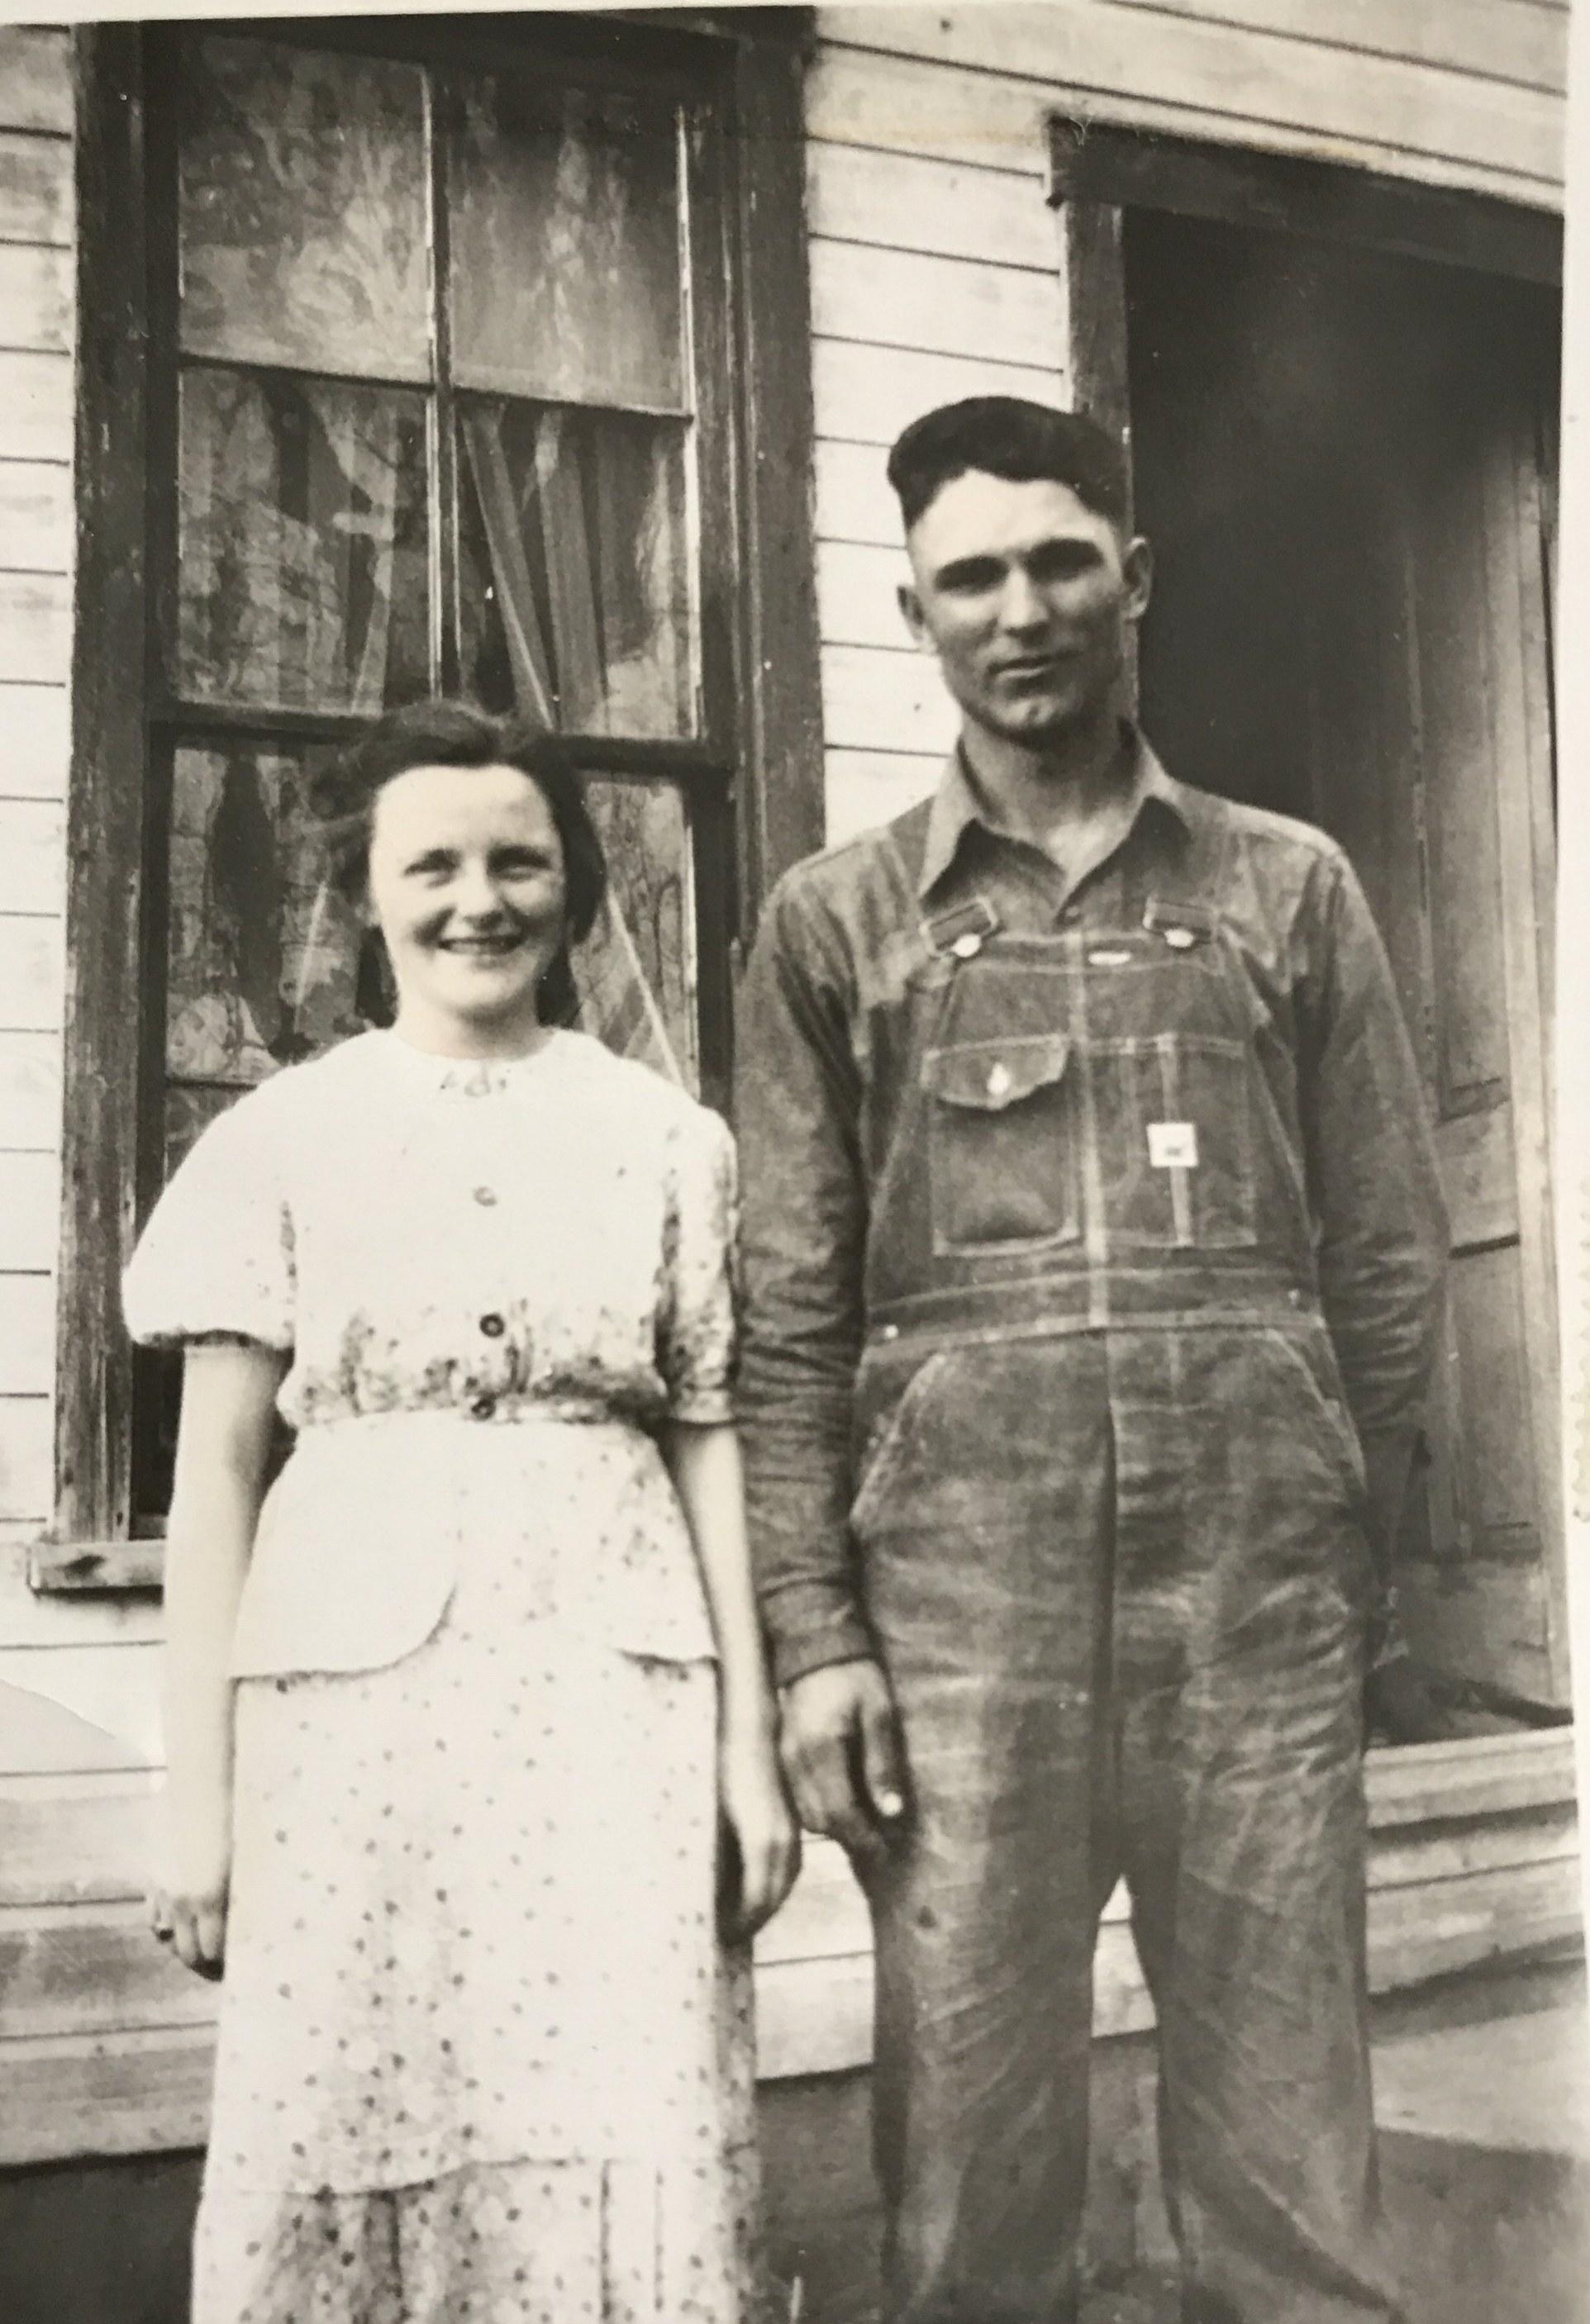 A young Grandma and Grandpa Andrew on their farm near Quincy, Illinois.